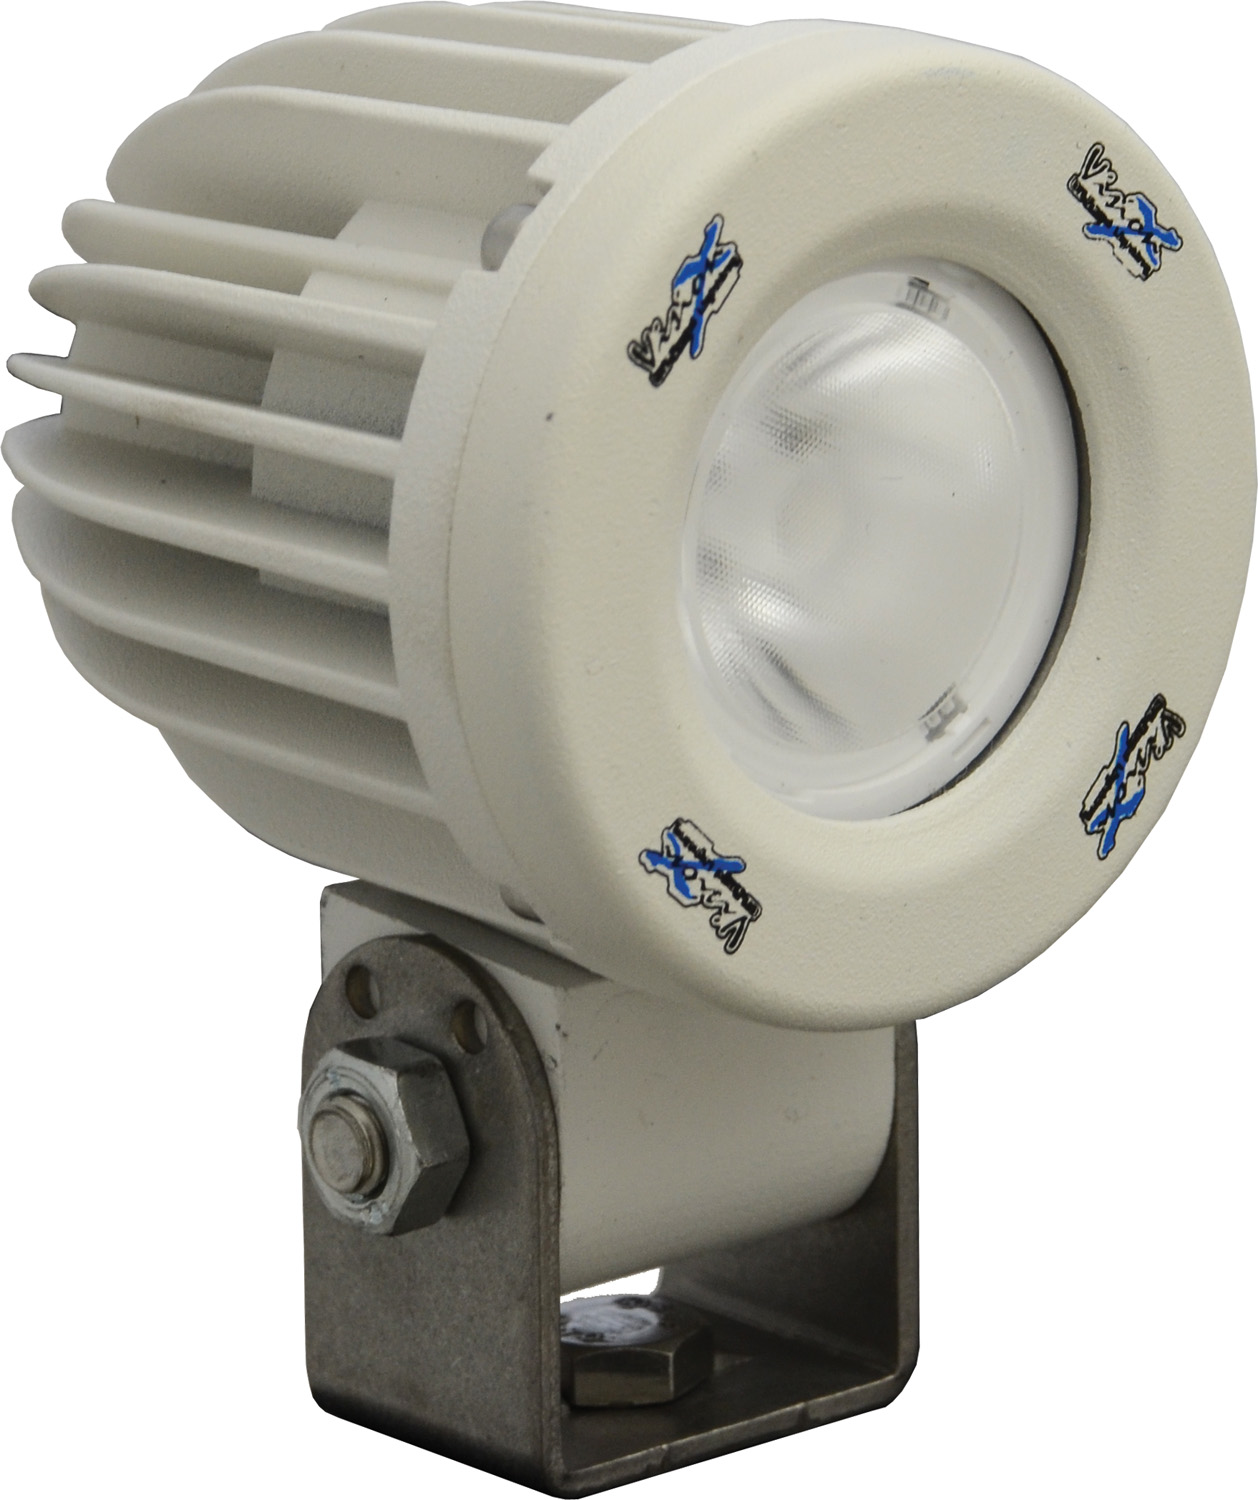 "2"" SOLSTICE SOLO PRIME WHITE 10W LED 10? NARROW"